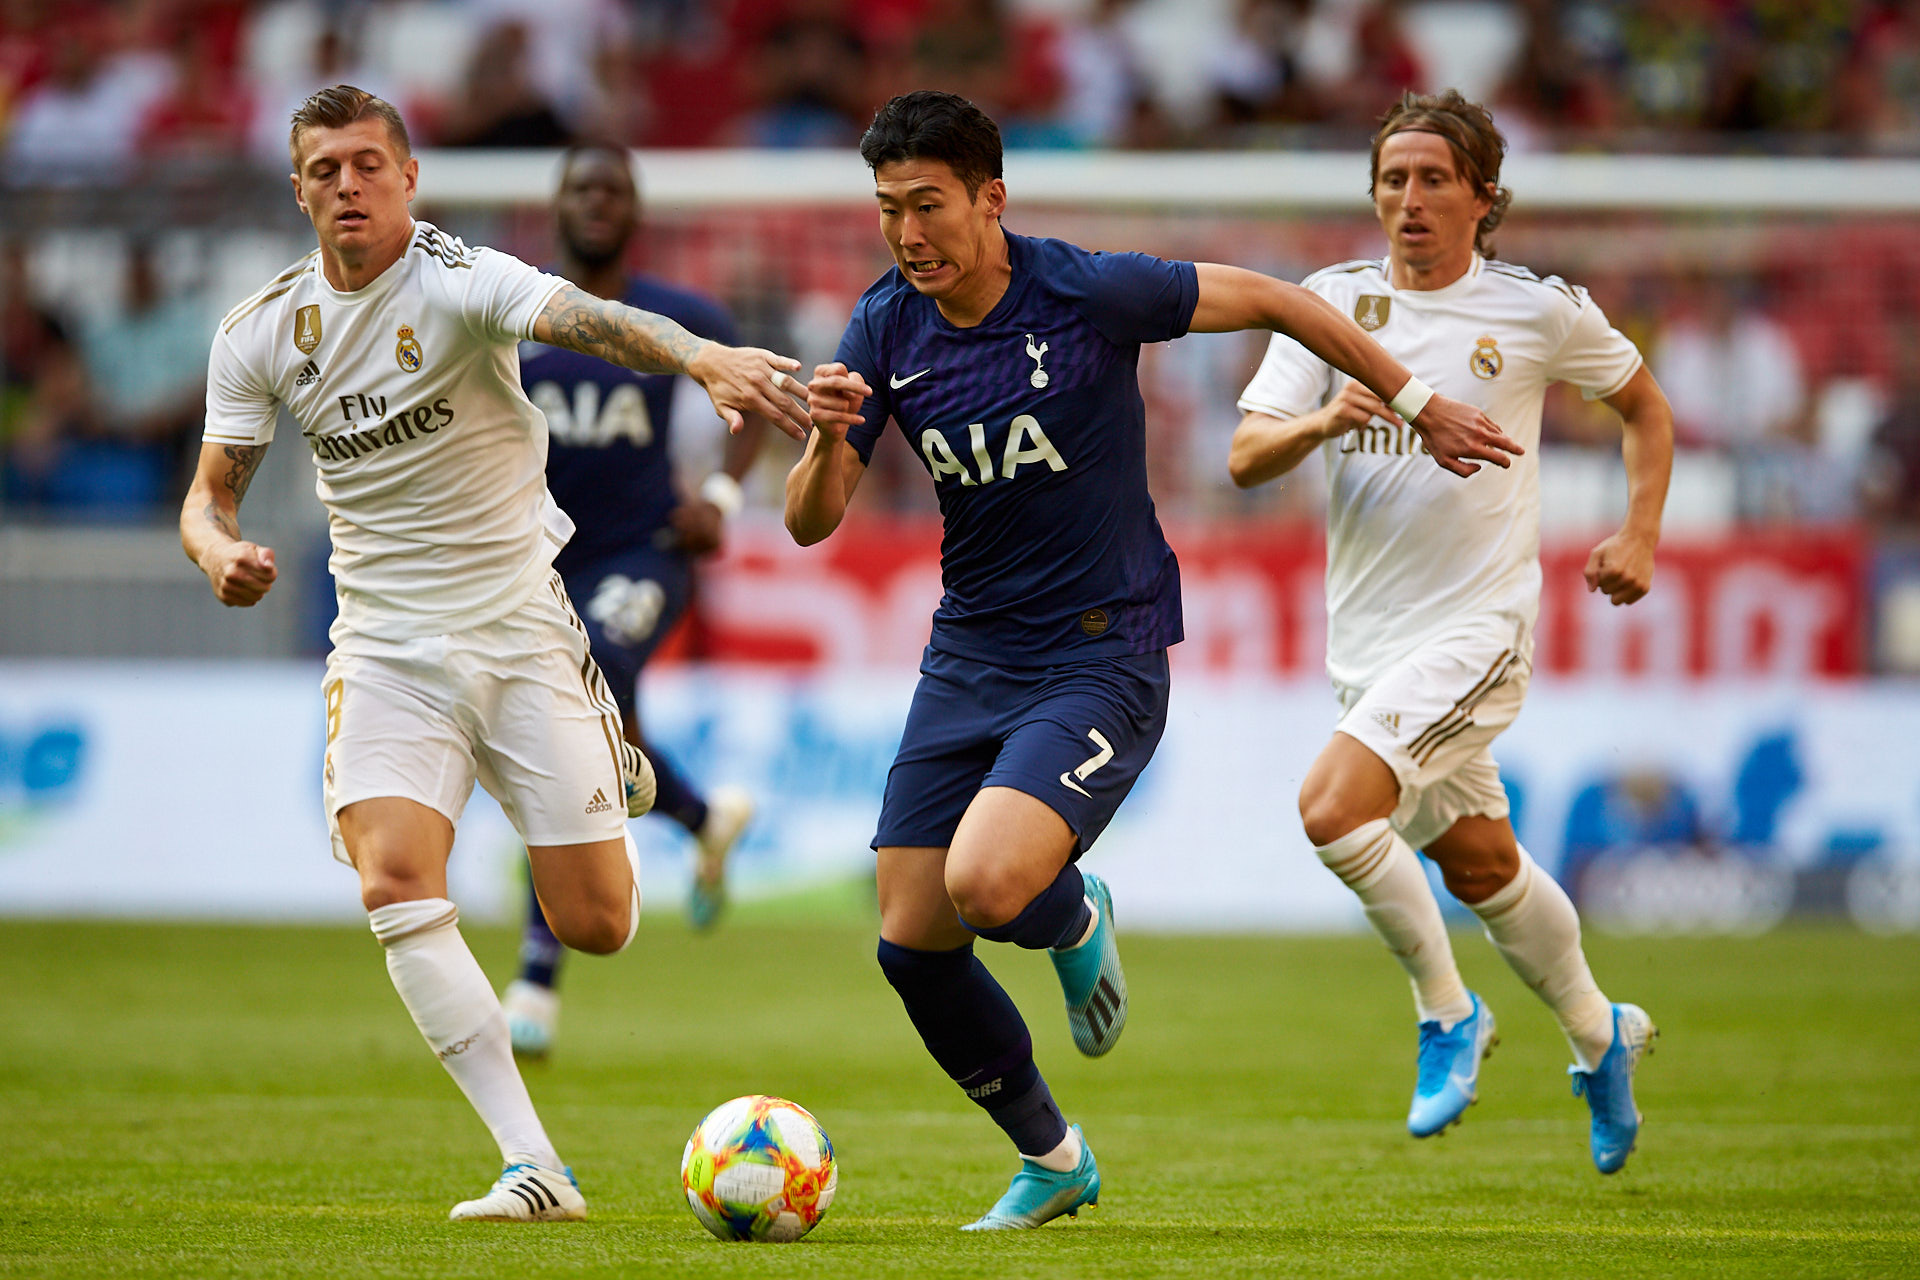 Son Heung-min, Tottenham Hotspur, and Toni Kroos and Luka Modrić, Real Madrid